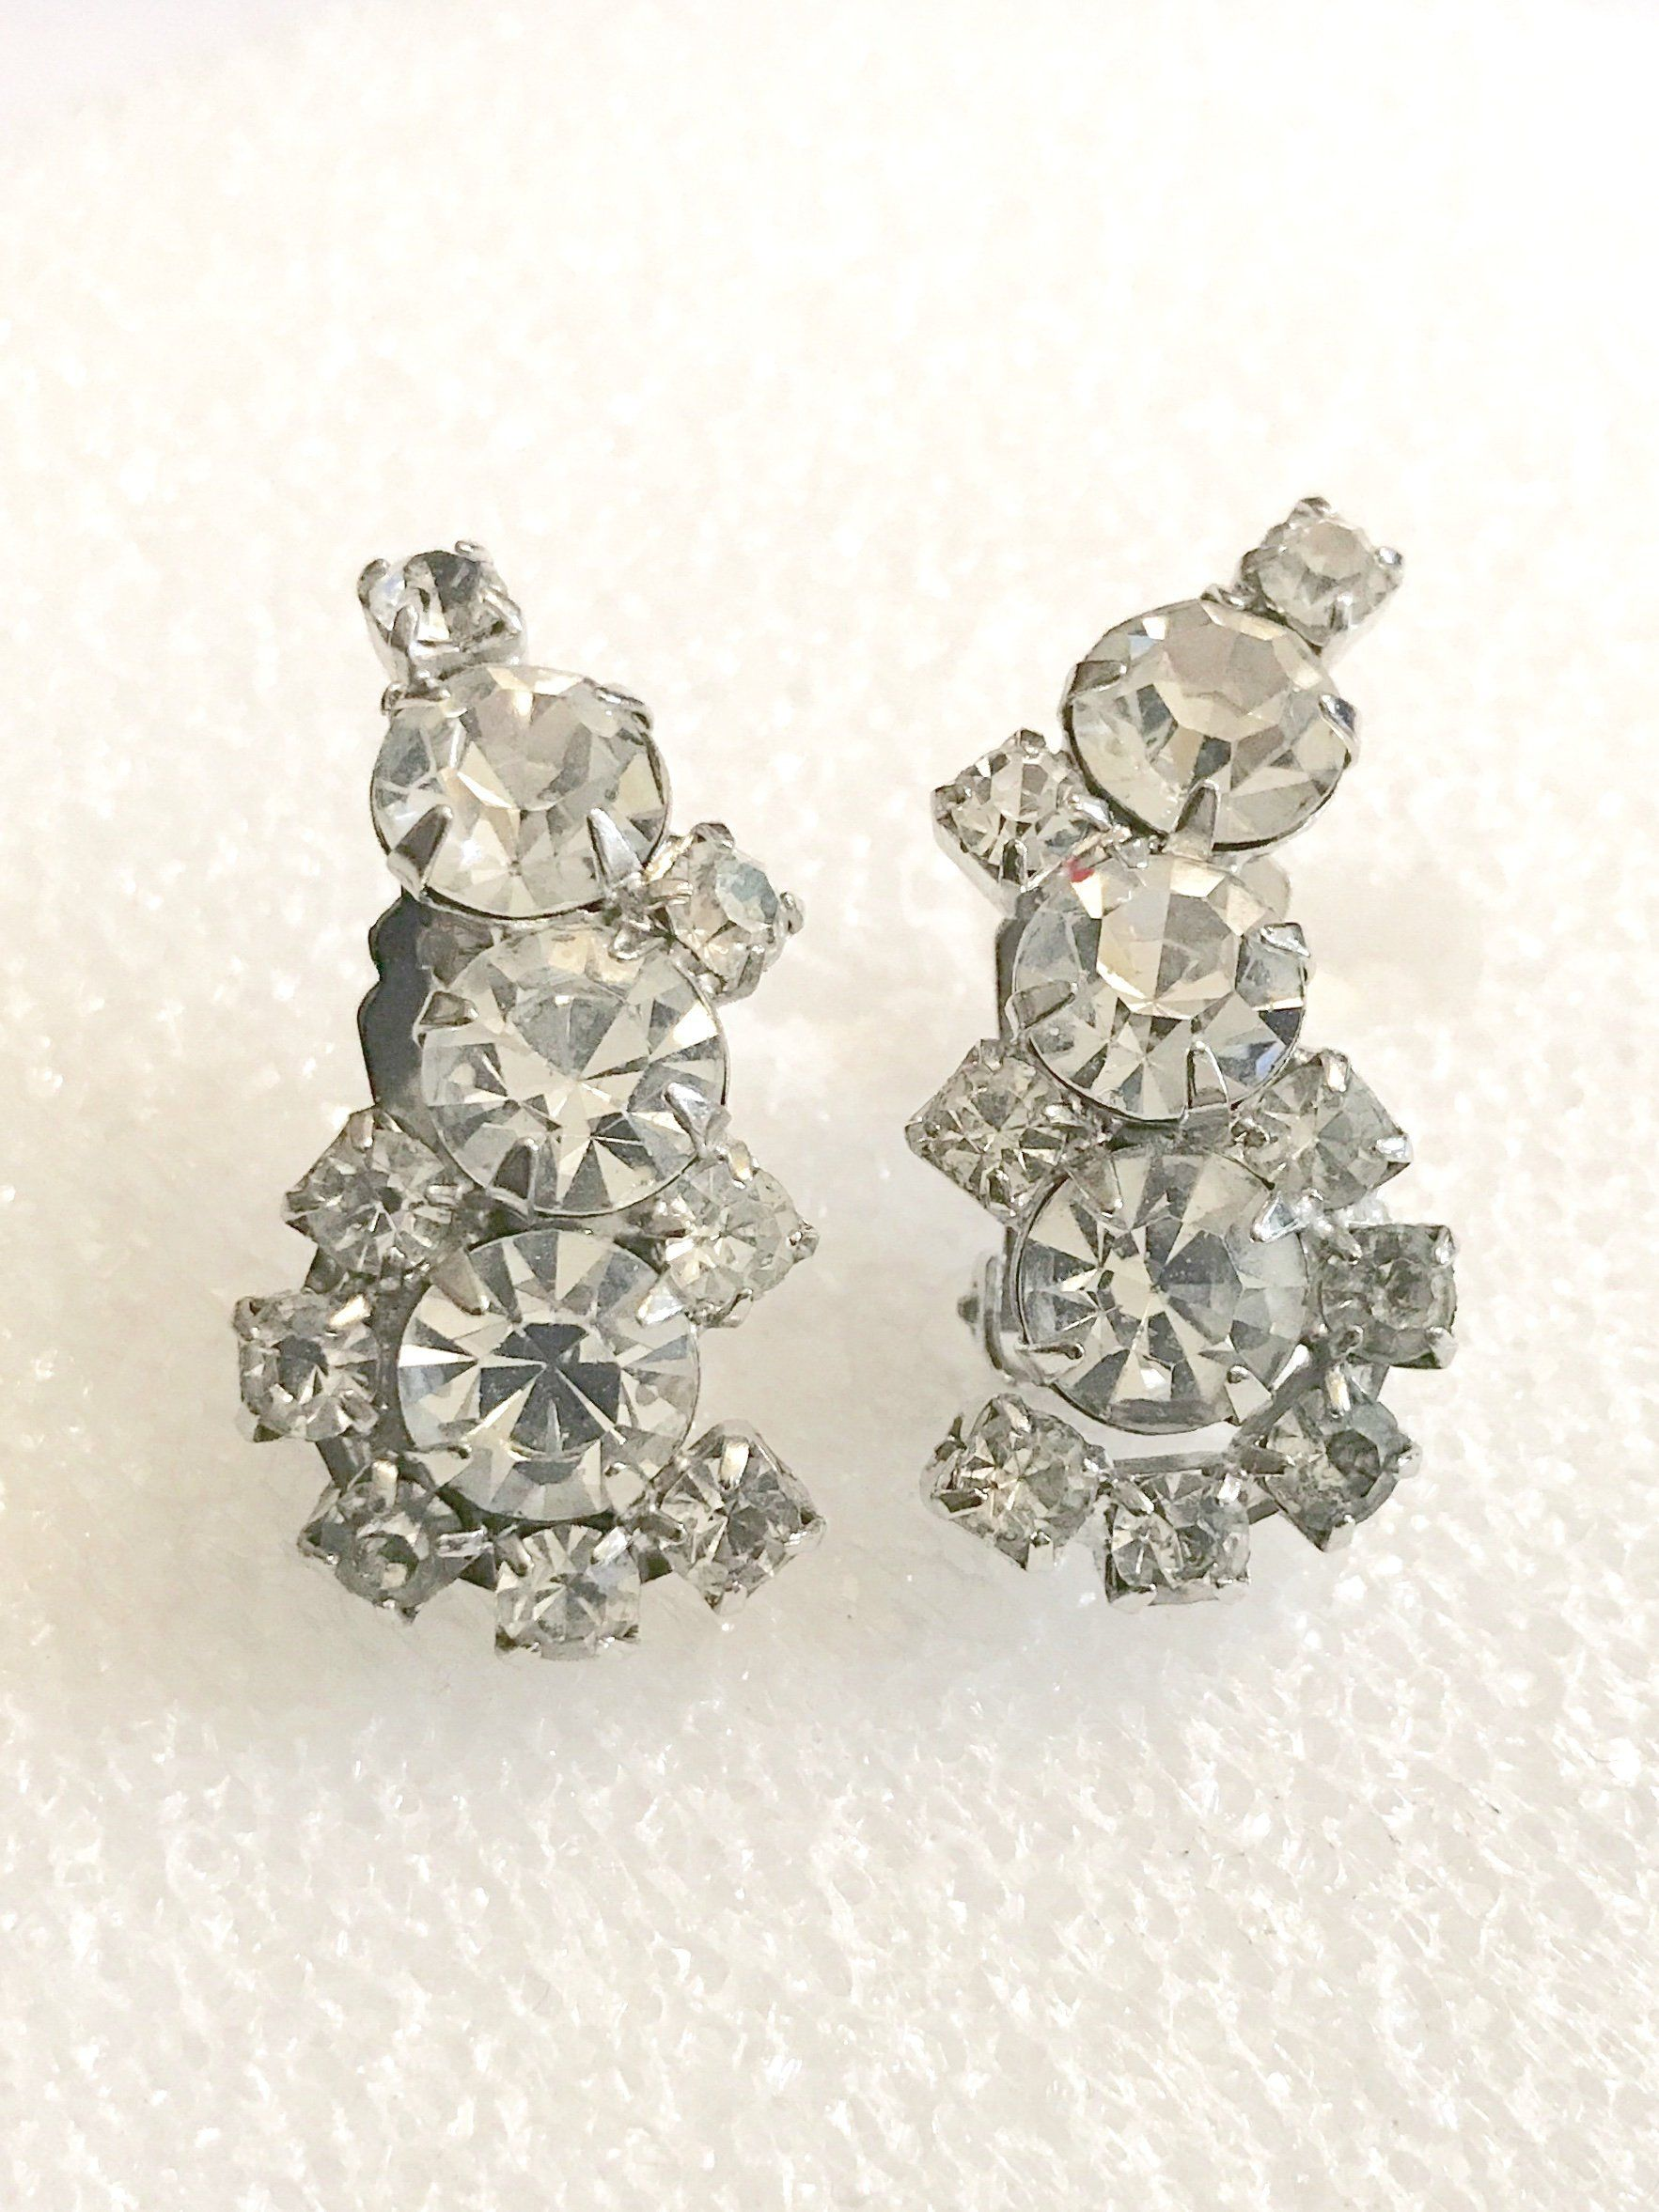 evening fashion accessories Crystal earrings rhinestone cluster beads clip back mid century jewelry bridal